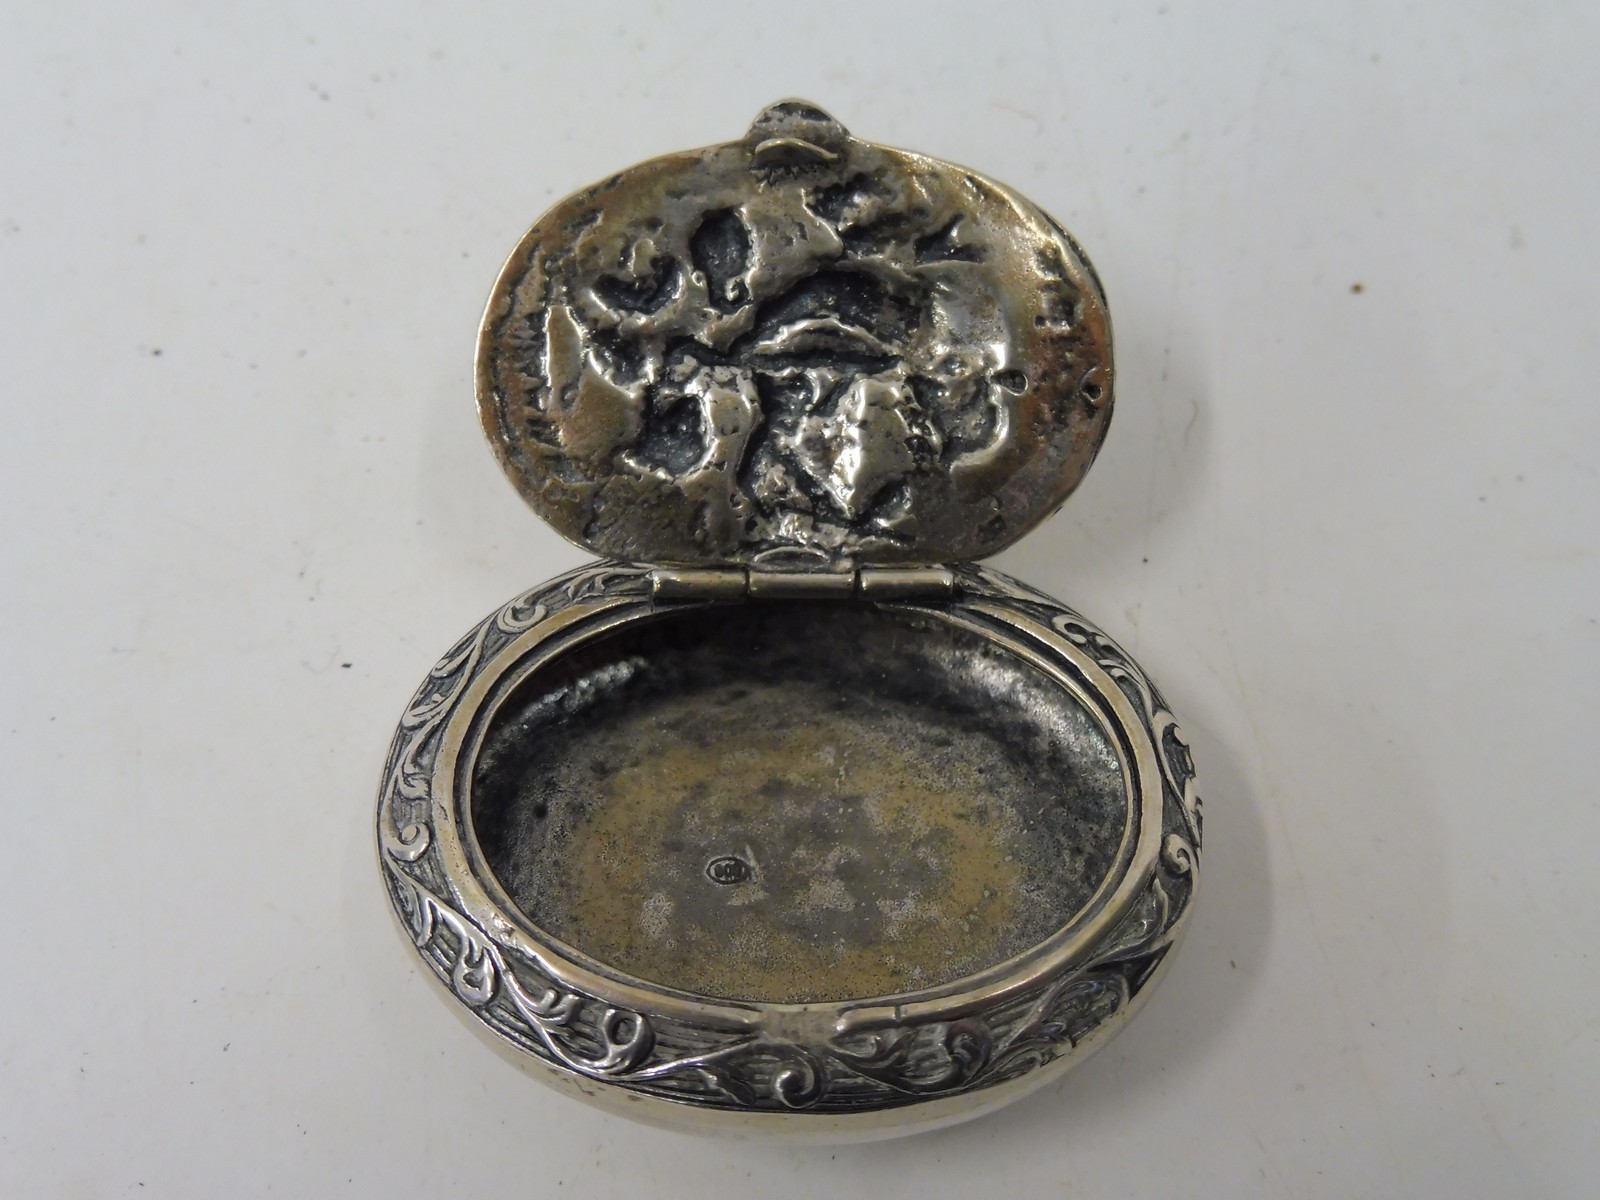 Lot 31 - A Continental silver oval lidded box, the lid with a scene of musicians in deep relief.